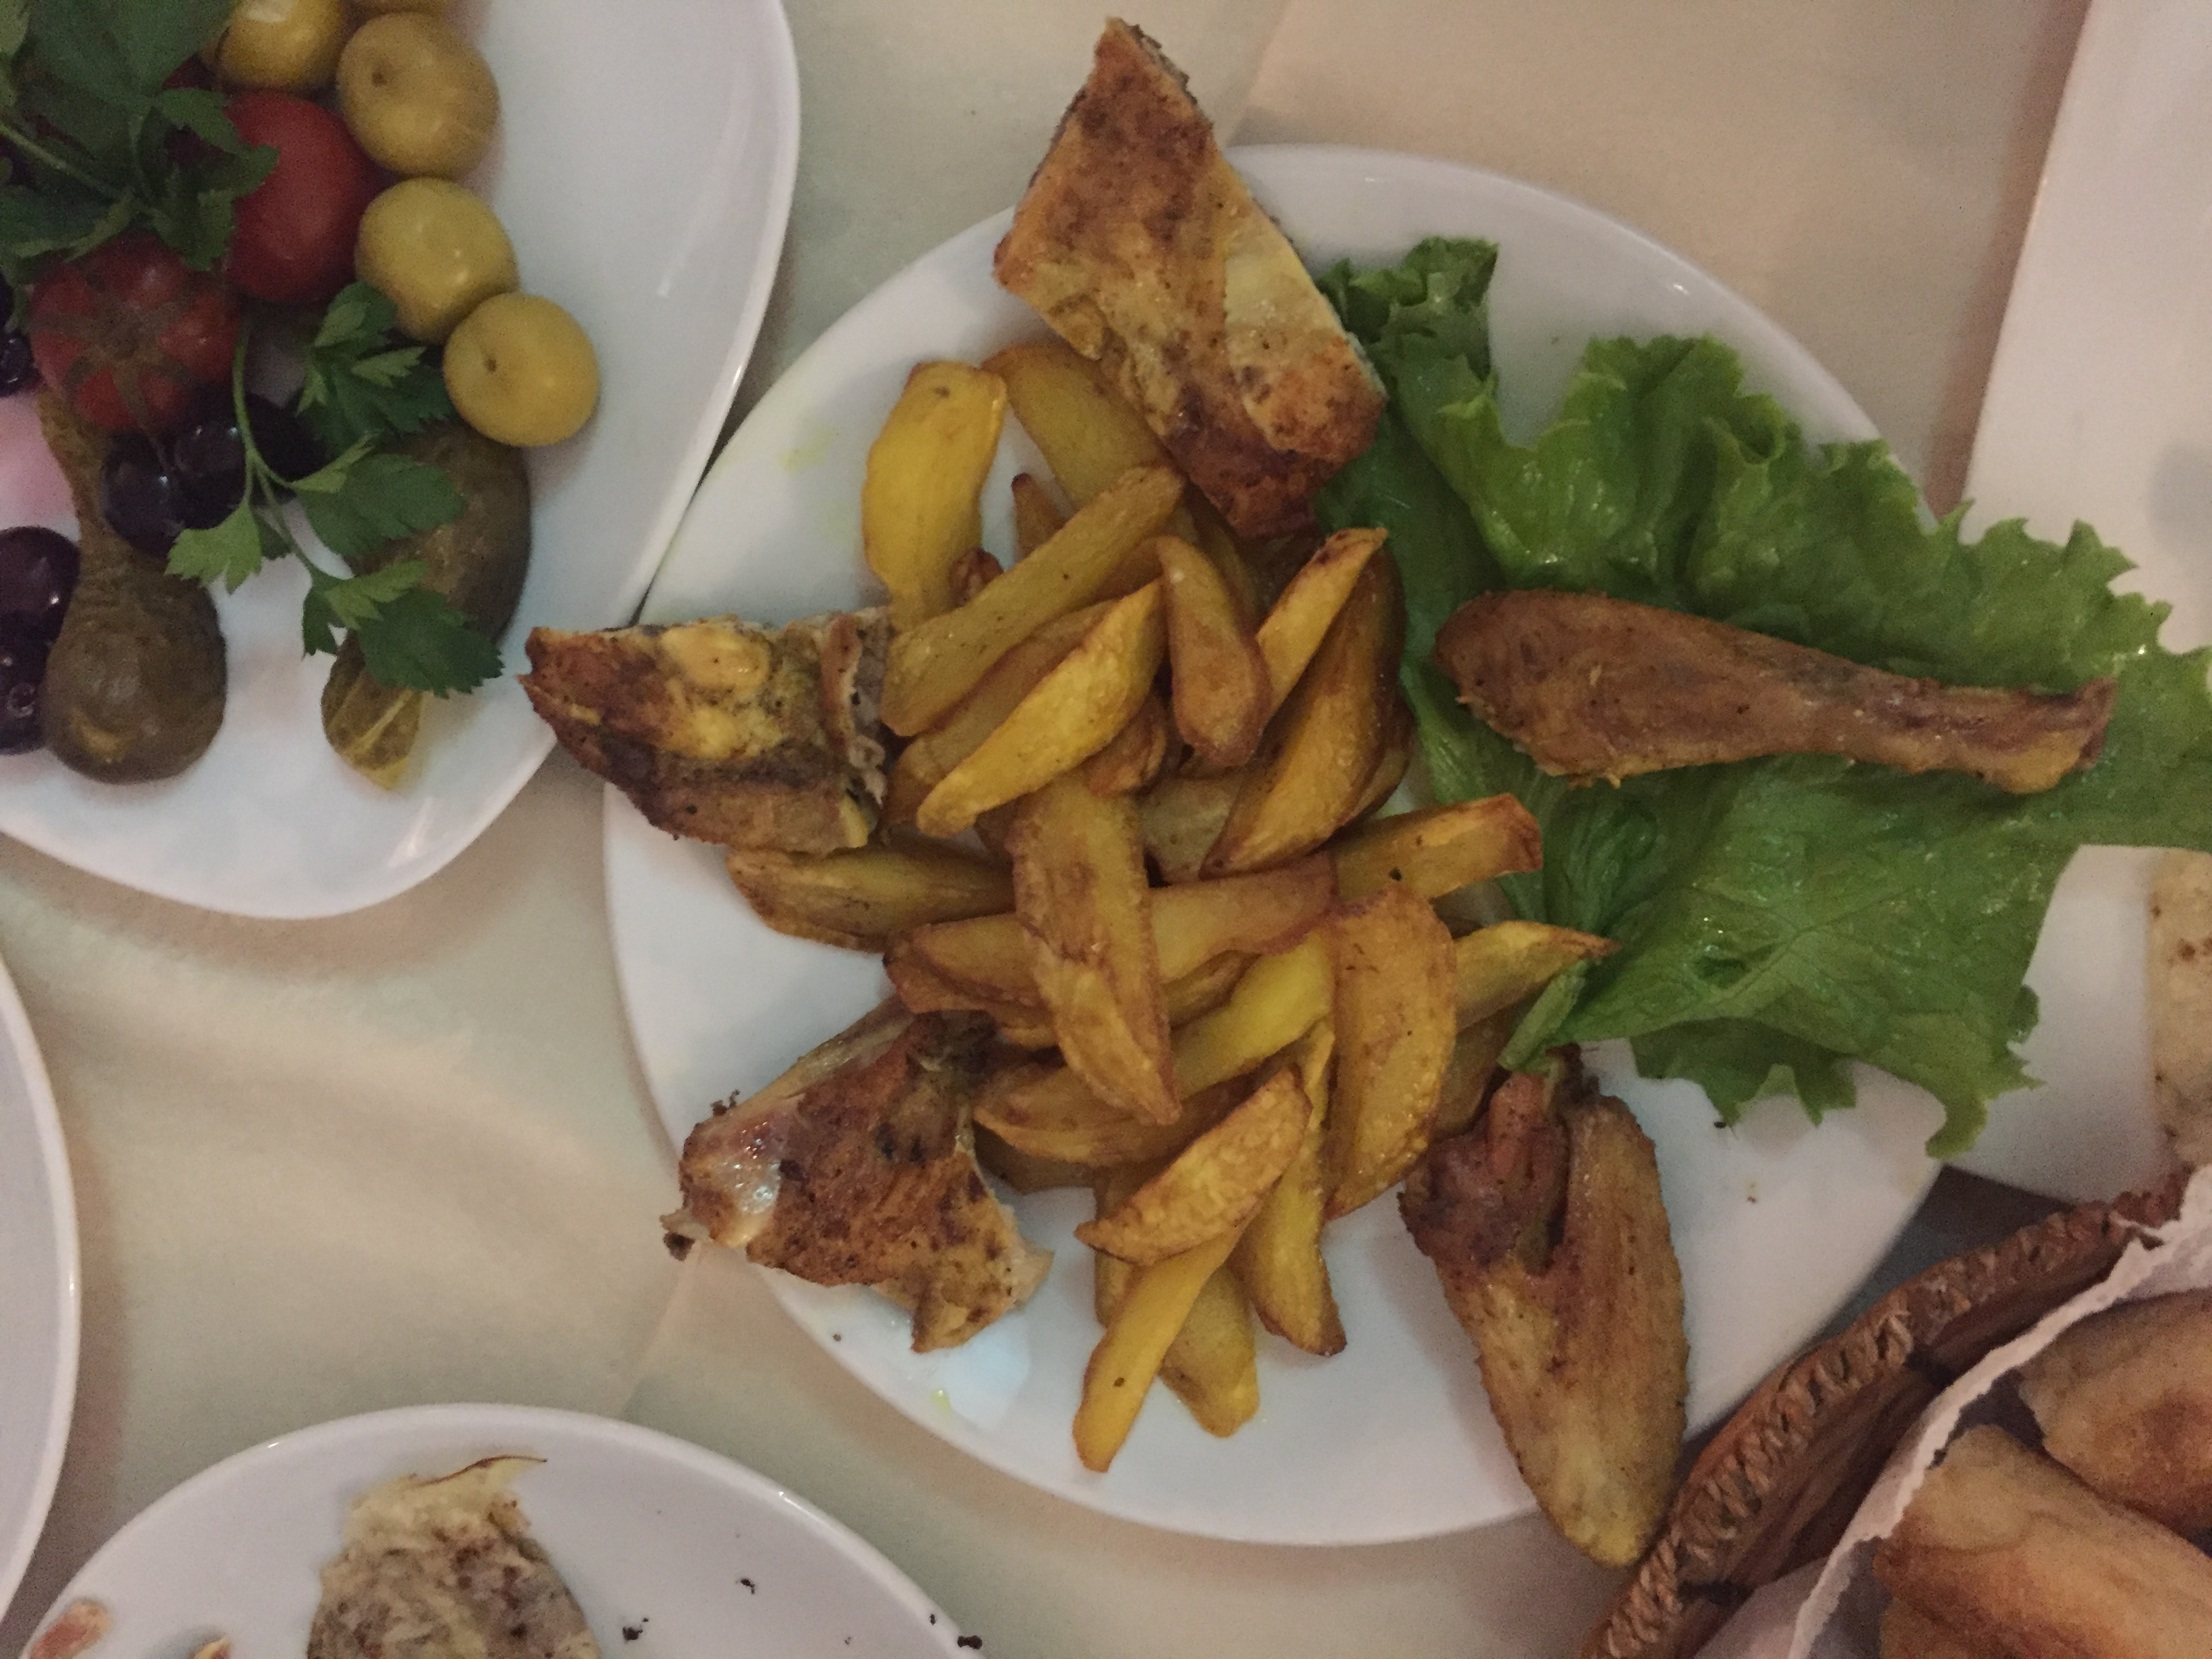 Azerbaijan locals like their meals big and hearty! I couldn't get enough of this roast chicken with spicy potato wedges